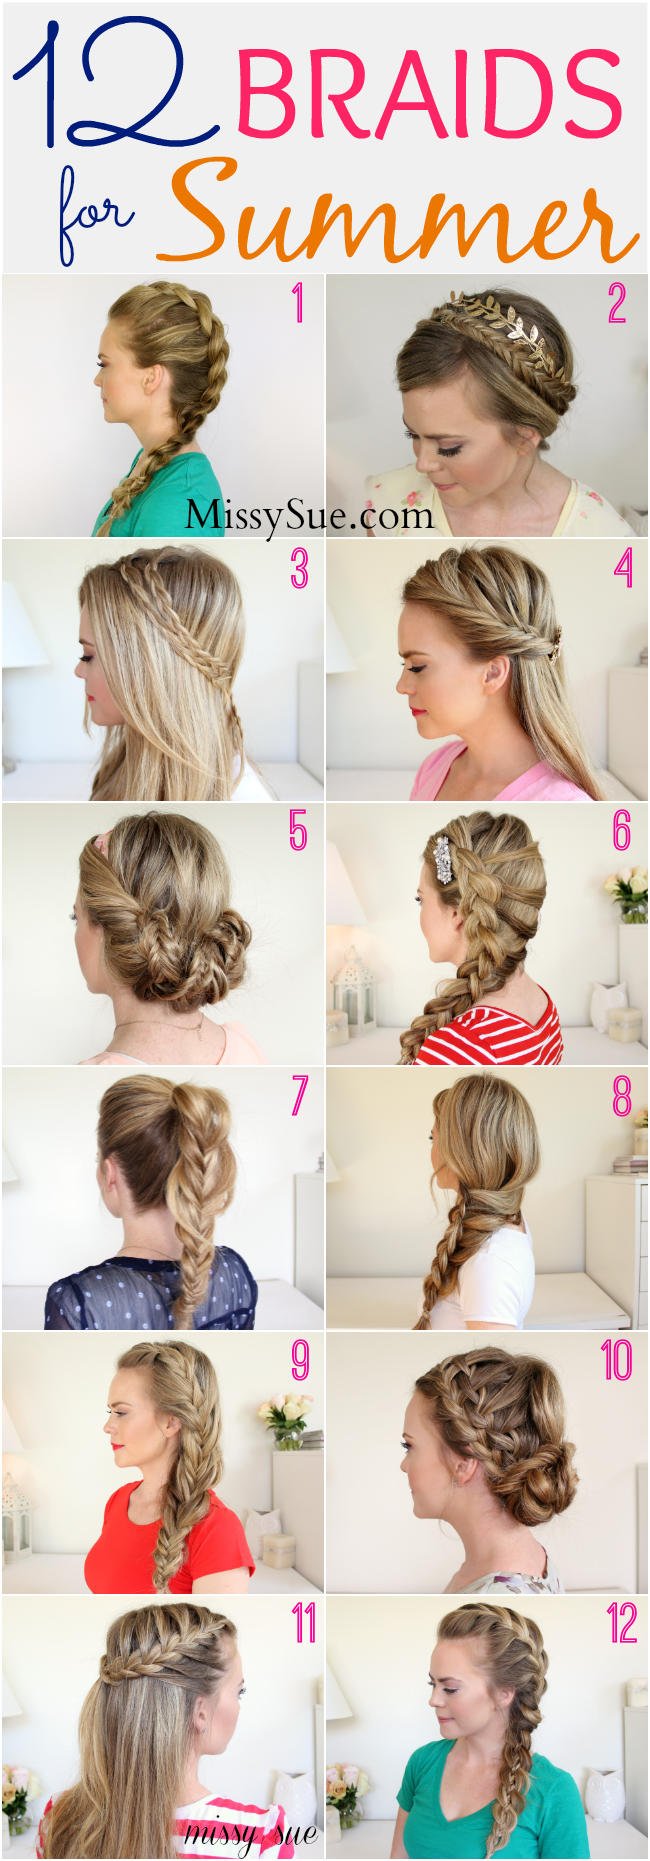 11 Braids for Summer  Pretty braided hairstyles, Hair styles